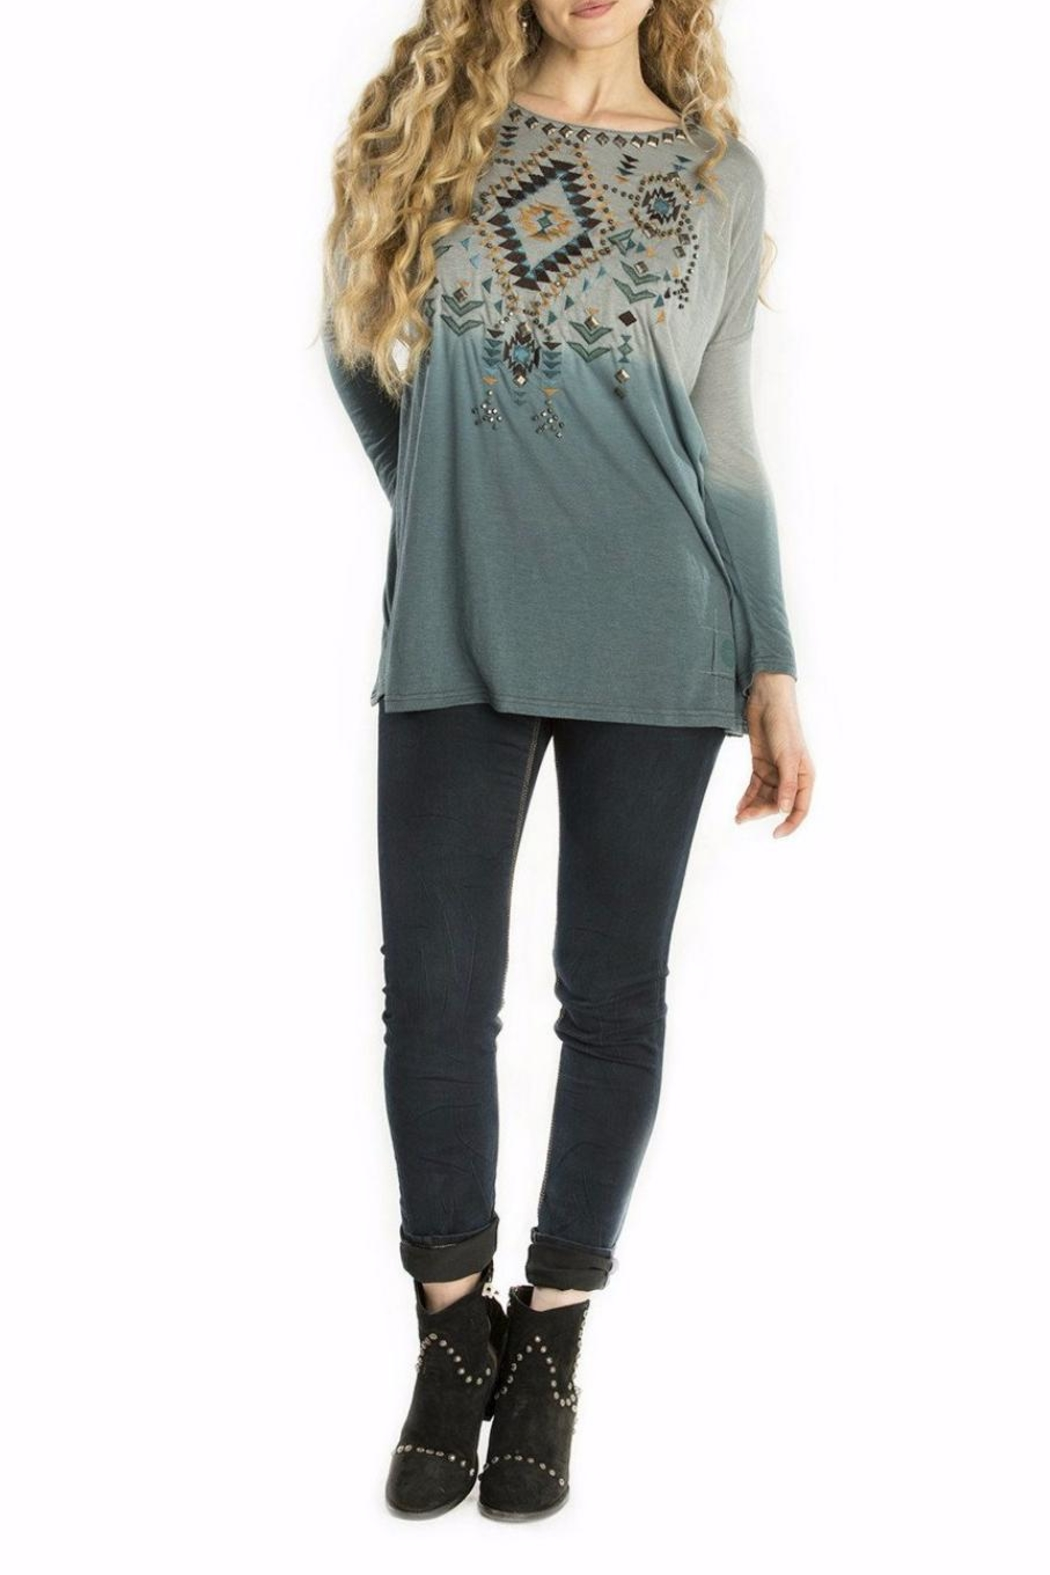 Double D Ranchwear Geometric Embroidered Tunic - Main Image